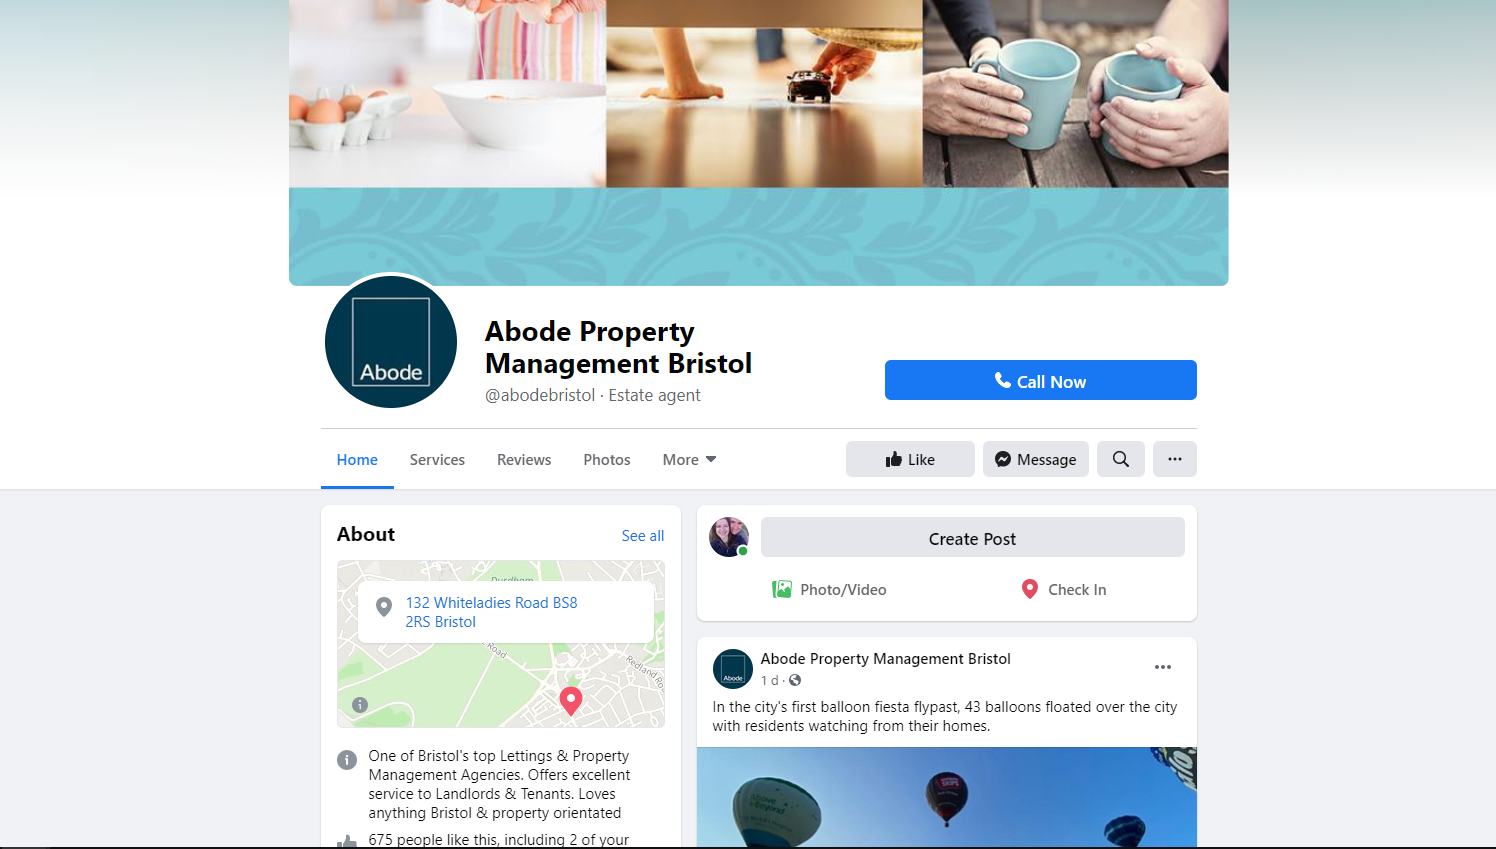 Abode Facebook Page